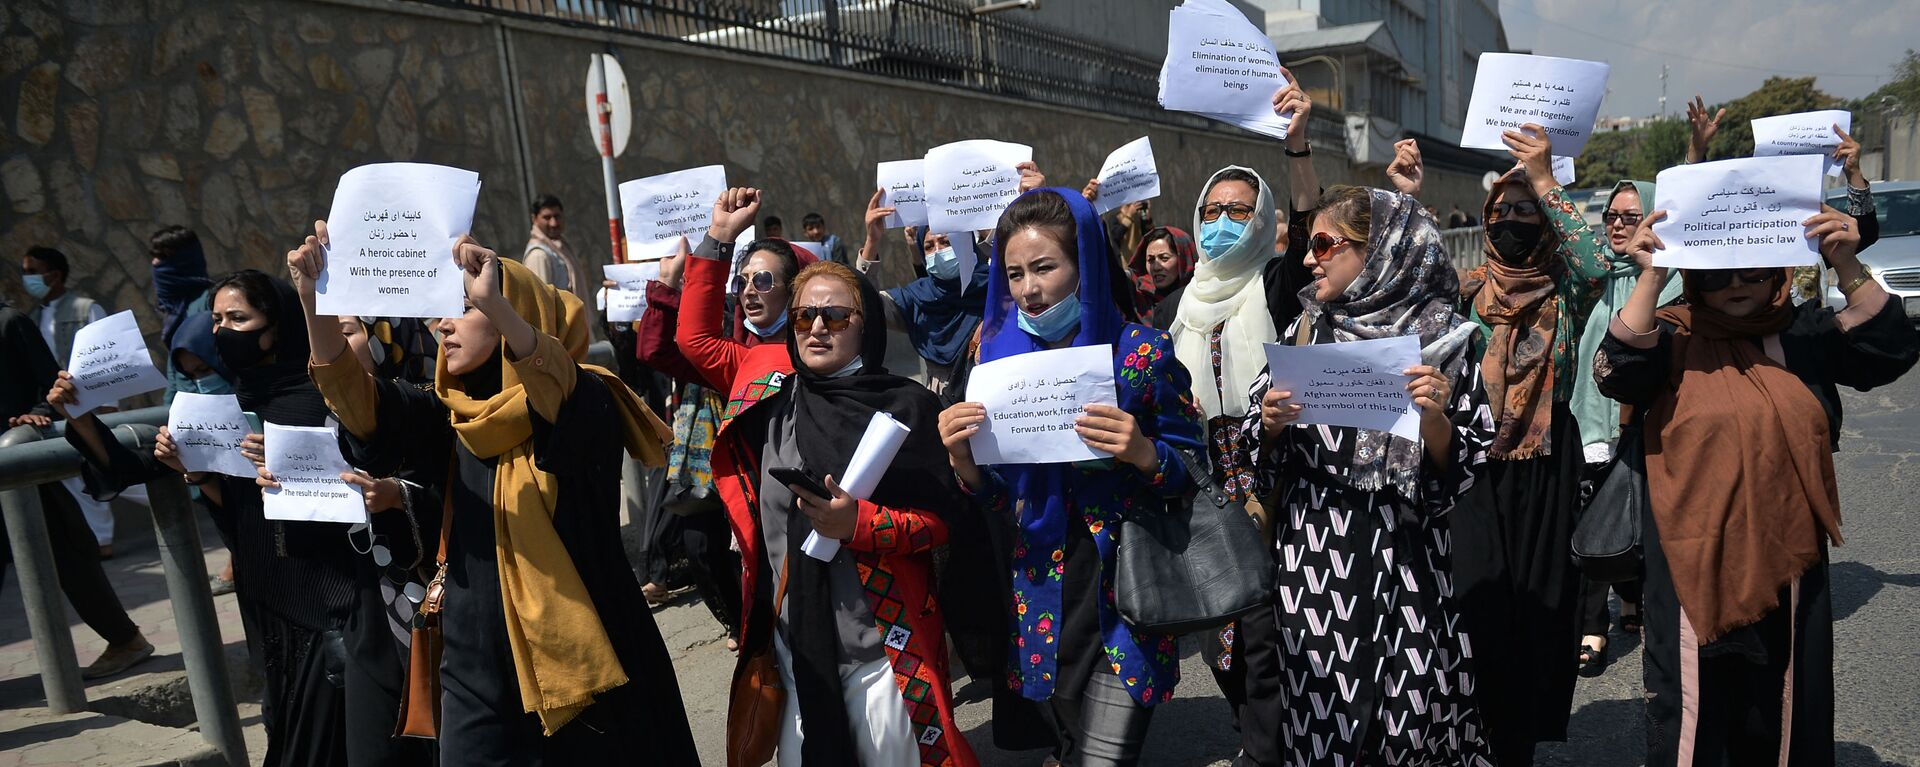 Afghan women take part in a protest march for their rights under the Taliban rule in the downtown area of Kabul on September 3, 2021.  - Sputnik International, 1920